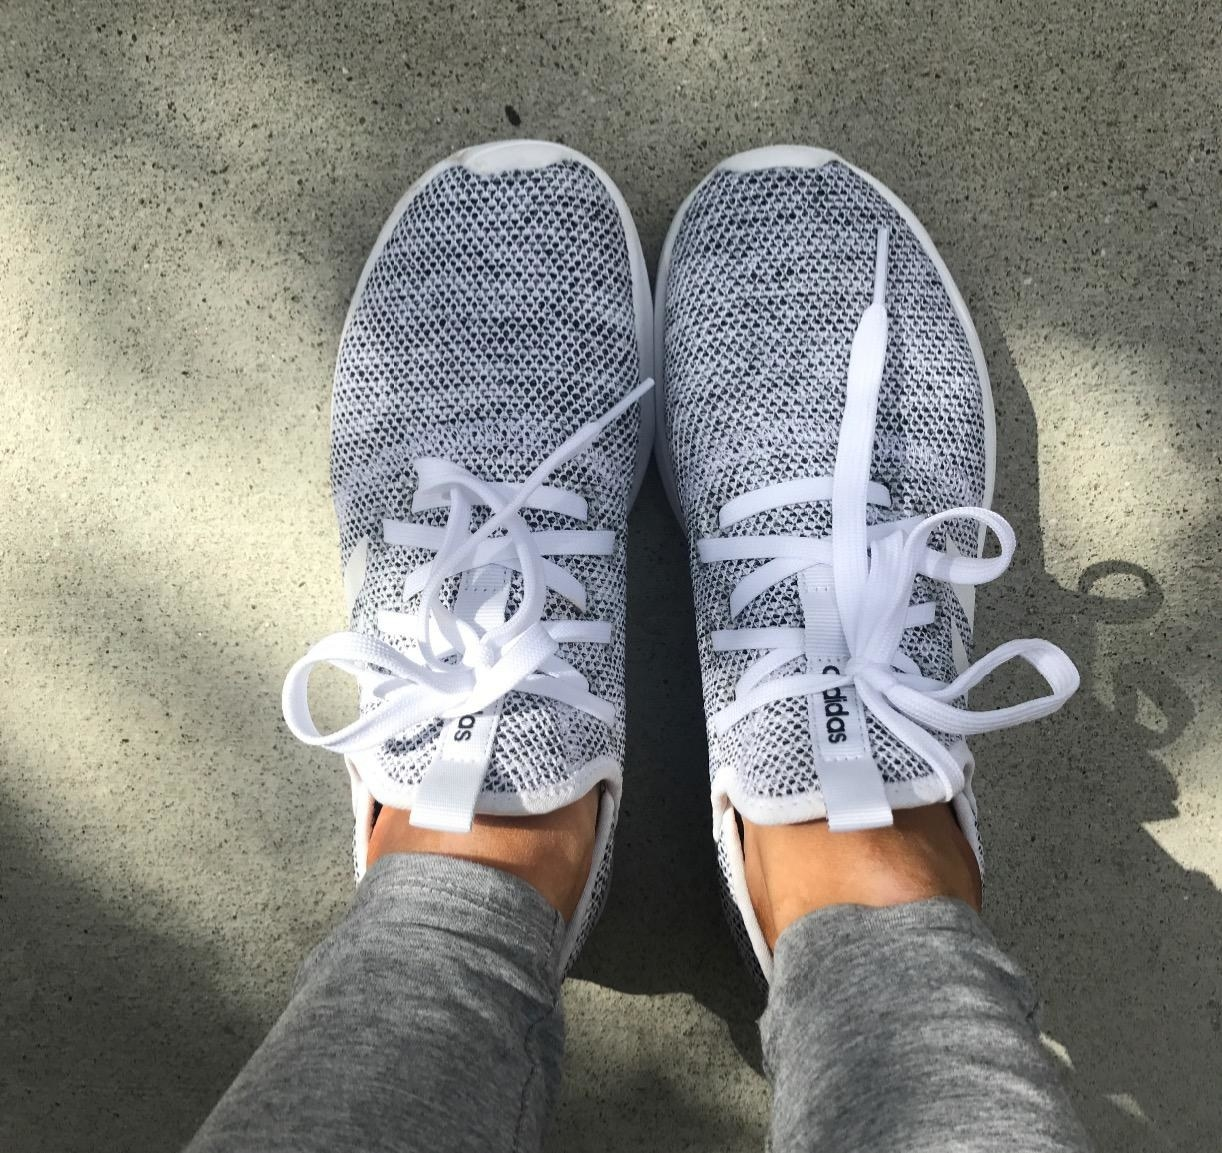 A reviewer wearing the laced sneakers in gray